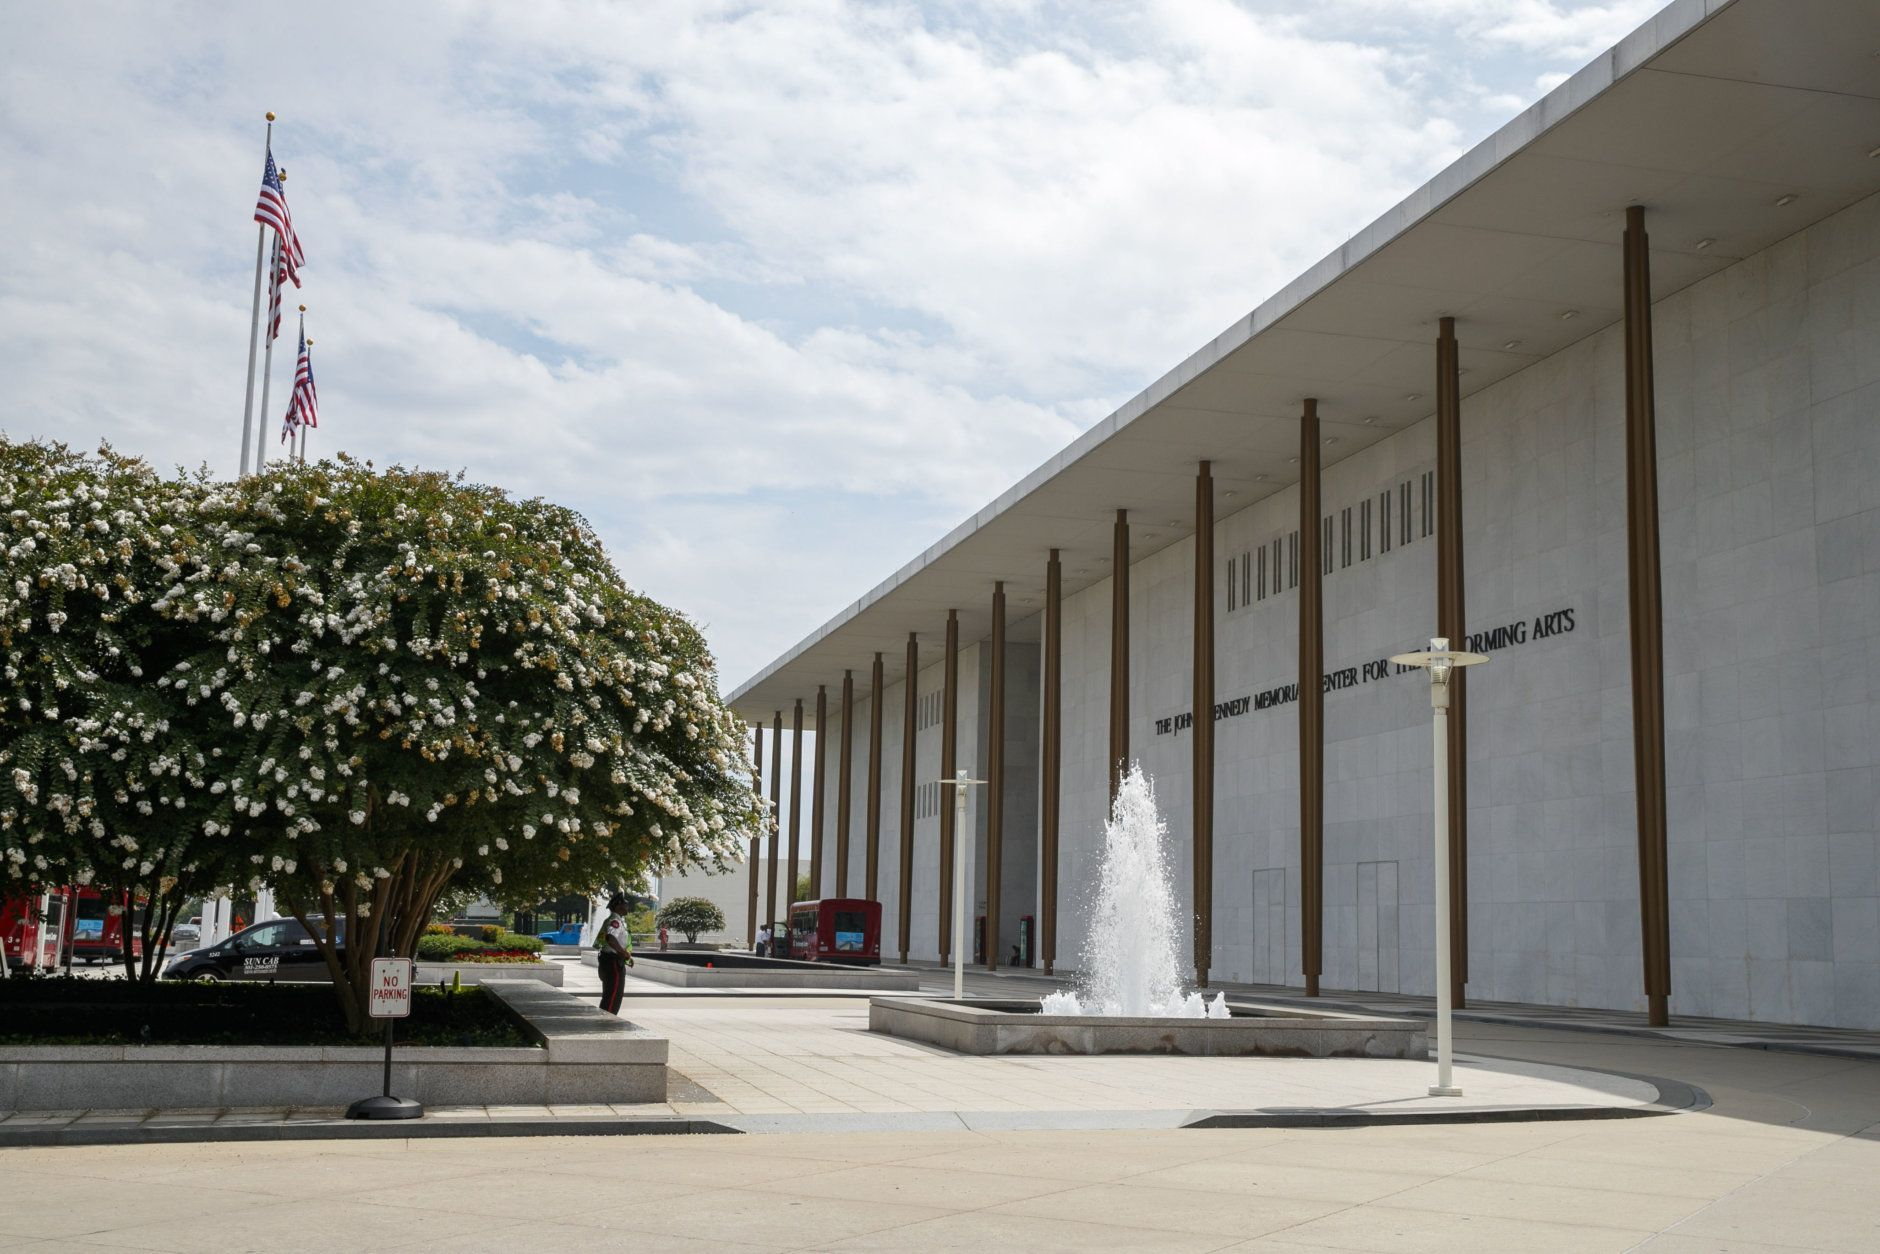 """<p><strong>Free concerts at The Kennedy Center</strong></p> <p>If your family enjoys the arts, take them to a show at the Kennedy Center. Put your credit card away — this one won&#8217;t cost you anything.</p> <p>Every day, the Kennedy Center puts on free performances at its Millennium Stage at 6 p.m. — perfect if you&#8217;re looking for a predinner activity or are trying to keep it an early evening. For the full calendar of events, <a href=""""http://www.kennedy-center.org/video/upcoming"""" target=""""_blank"""" rel=""""noopener noreferrer"""">visit the venue&#8217;s website</a>.</p> <p>New in 2019 is <a href=""""https://cms.kennedy-center.org/festivals/reach/schedule"""" target=""""_blank"""" rel=""""noopener"""">The REACH</a>, which opened in September. The expansion is a new way of imagining the intersection between audiences and art.</p>"""